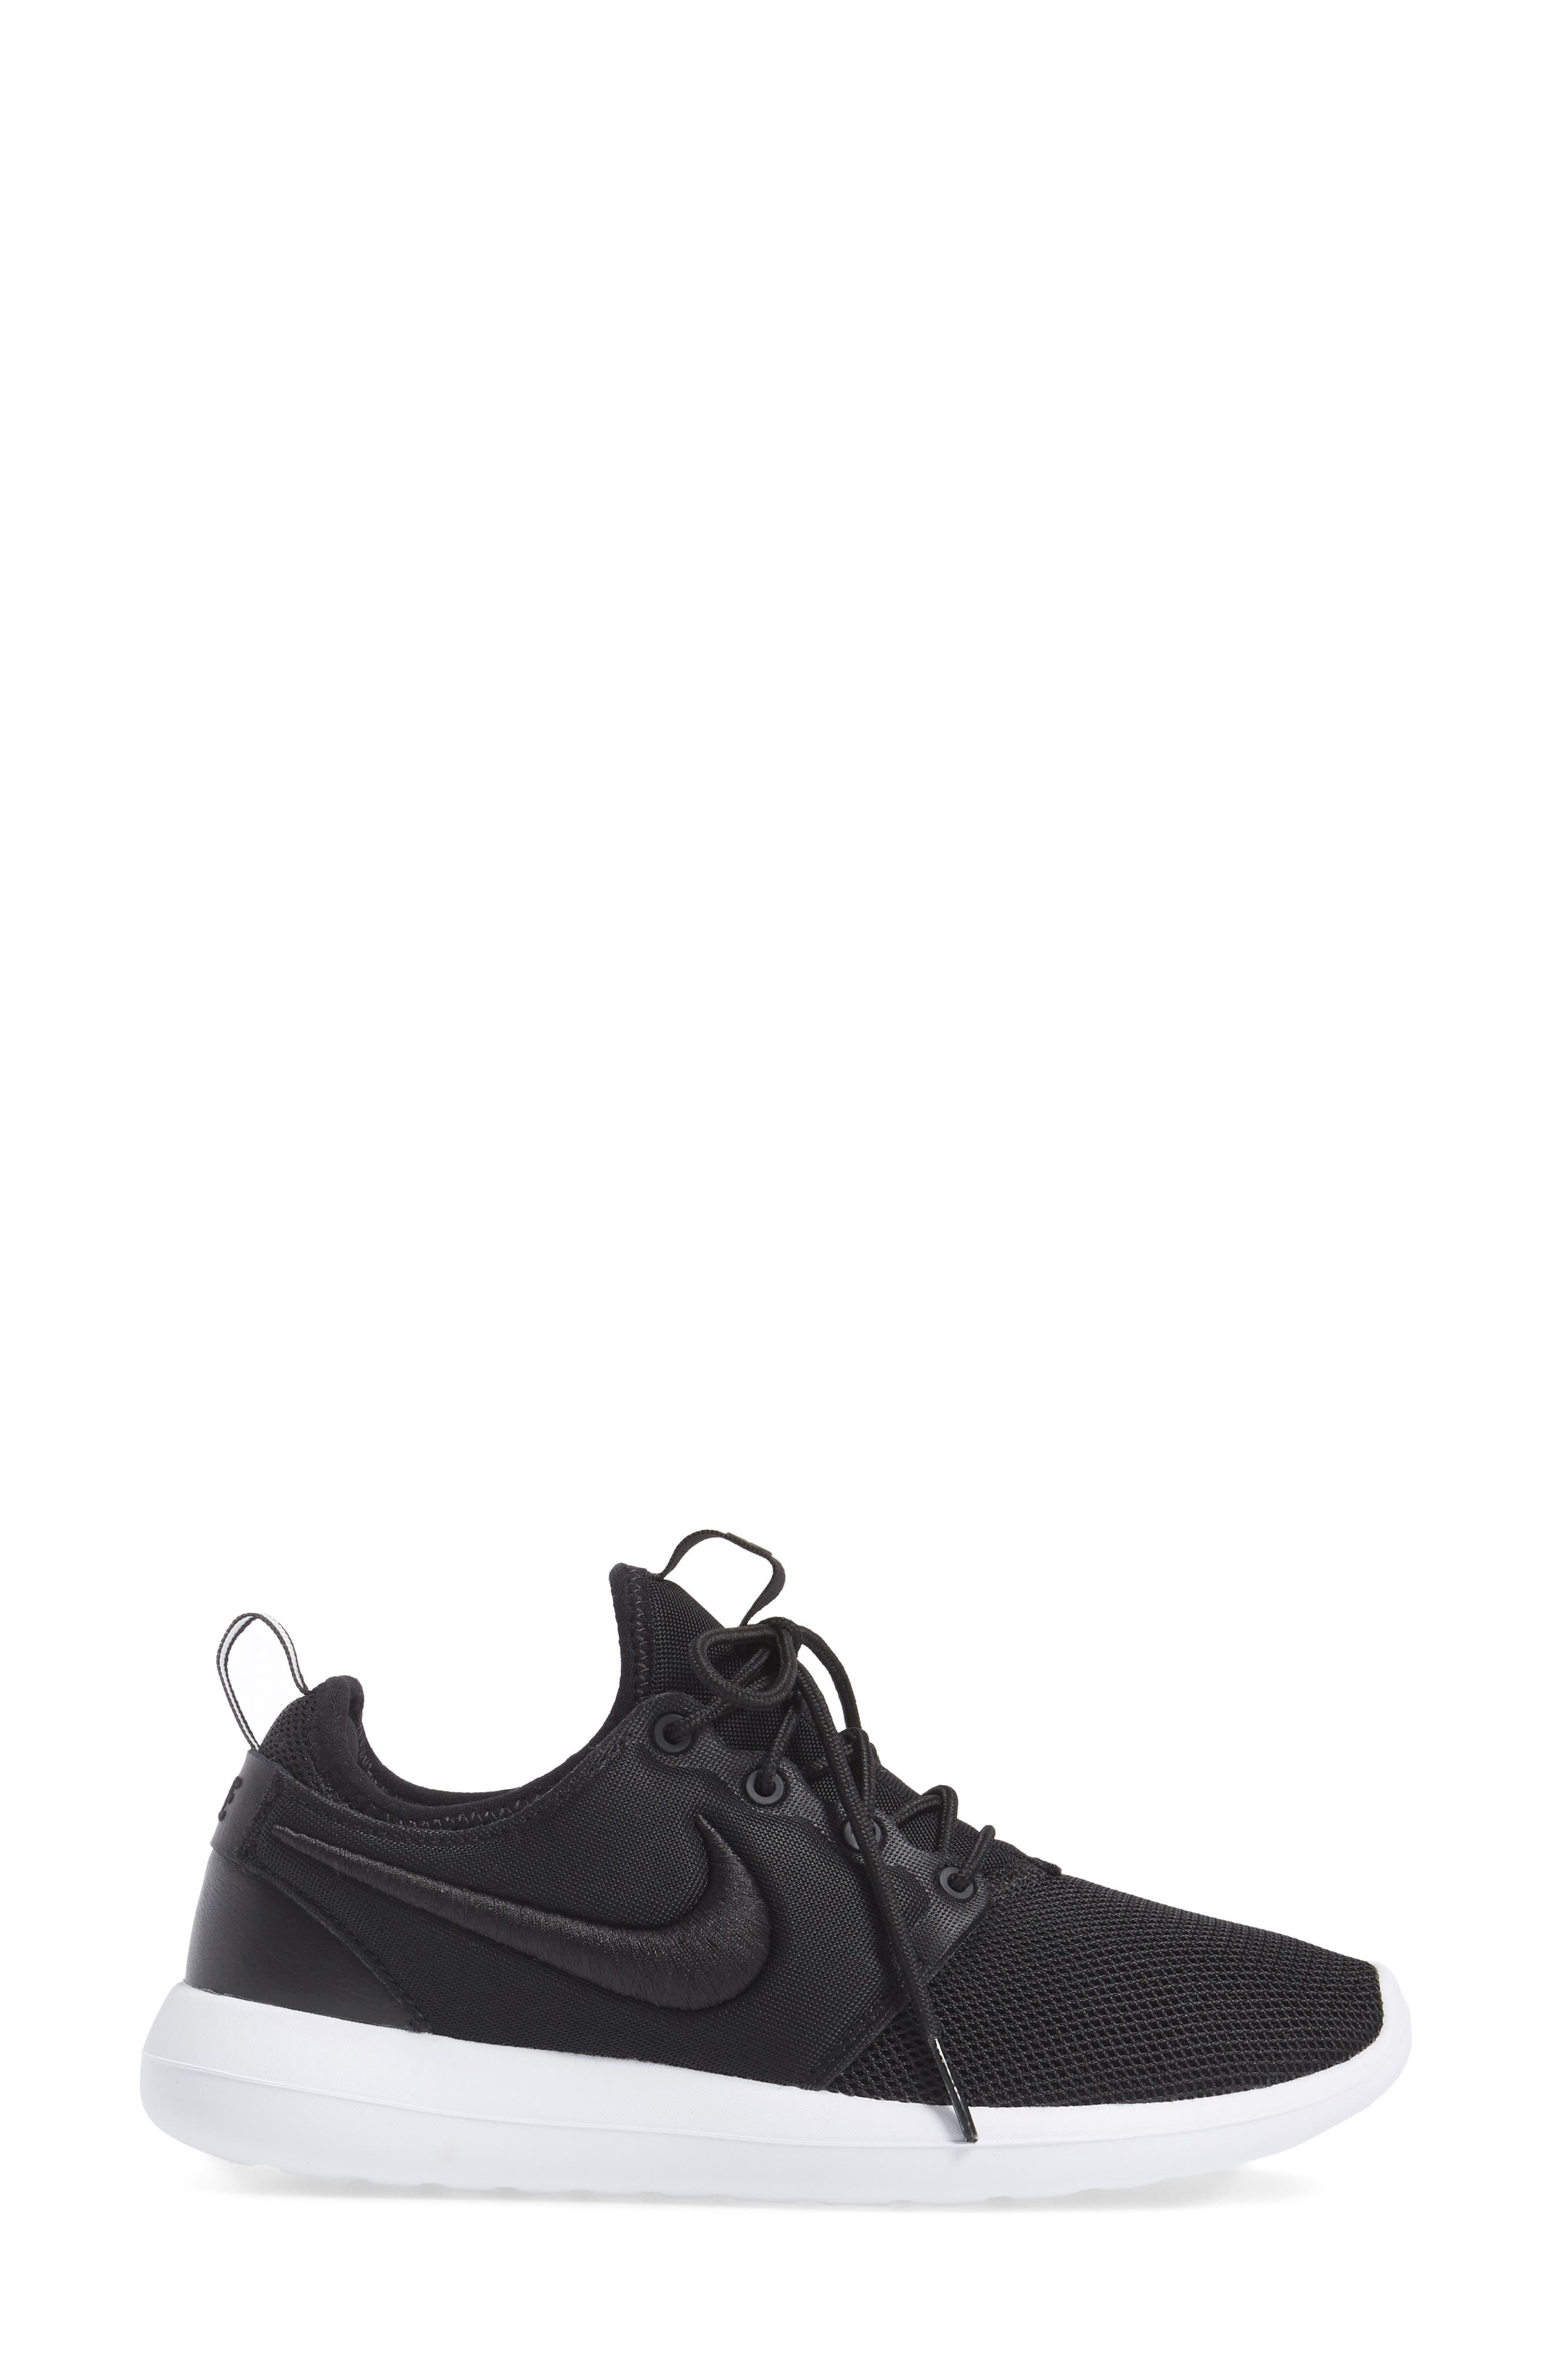 Roshe Two Breathe Sneaker,                             Alternate thumbnail 3, color,                             001